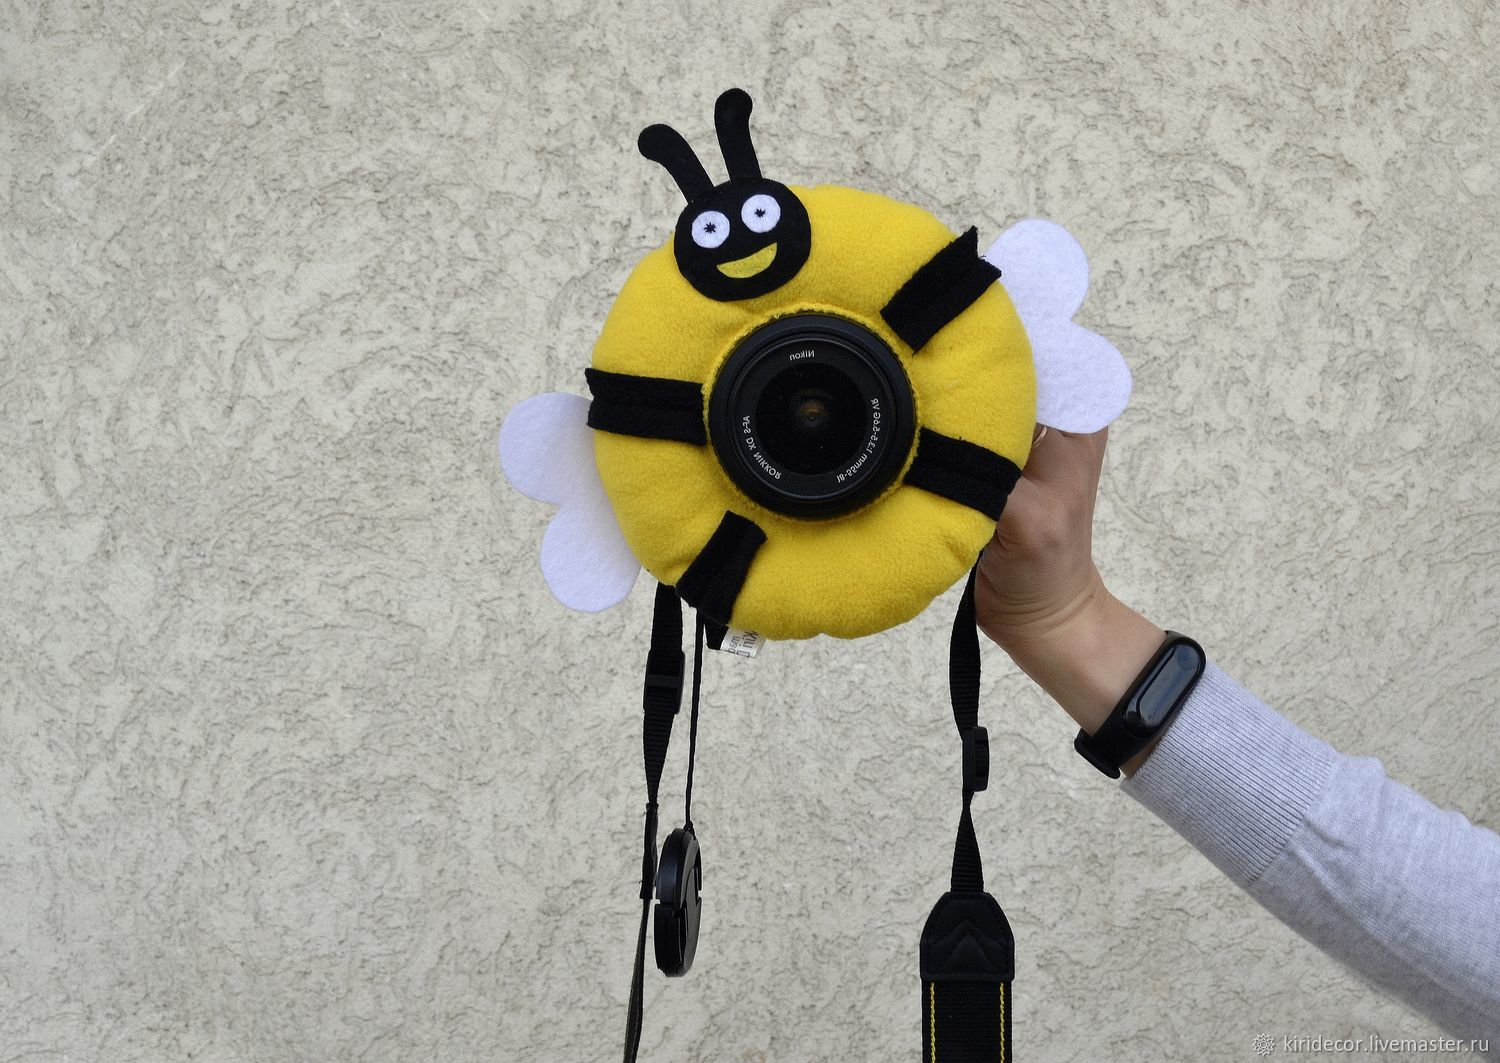 Toy for the camera Bee, photo accessories, photo props, Kits for photo shoots, Novosibirsk,  Фото №1